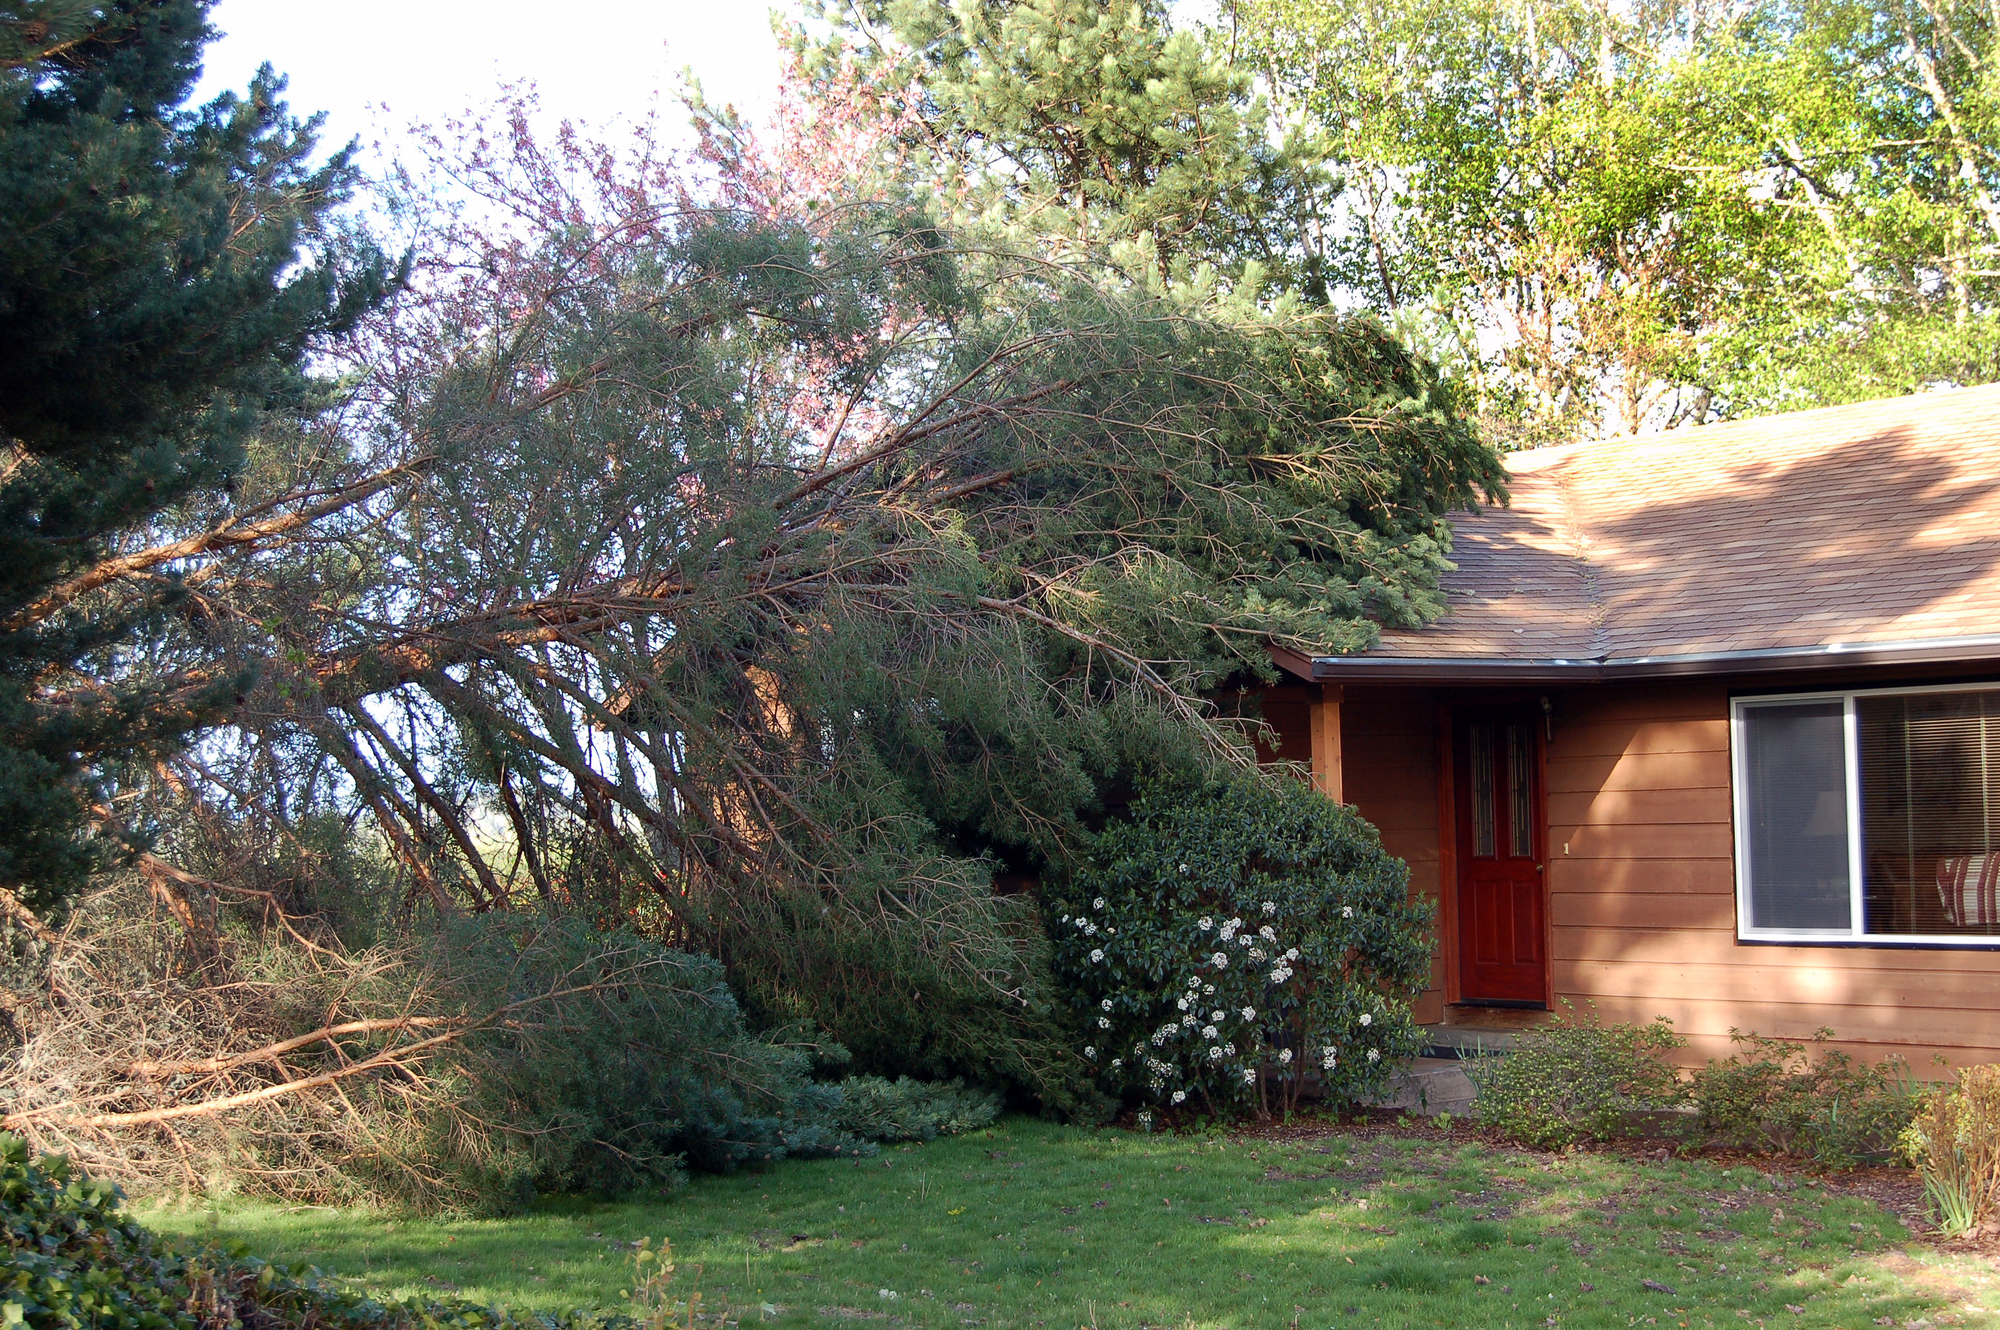 3 Reasons to Schedule Tree Removal for a Dead Tree - Mike's